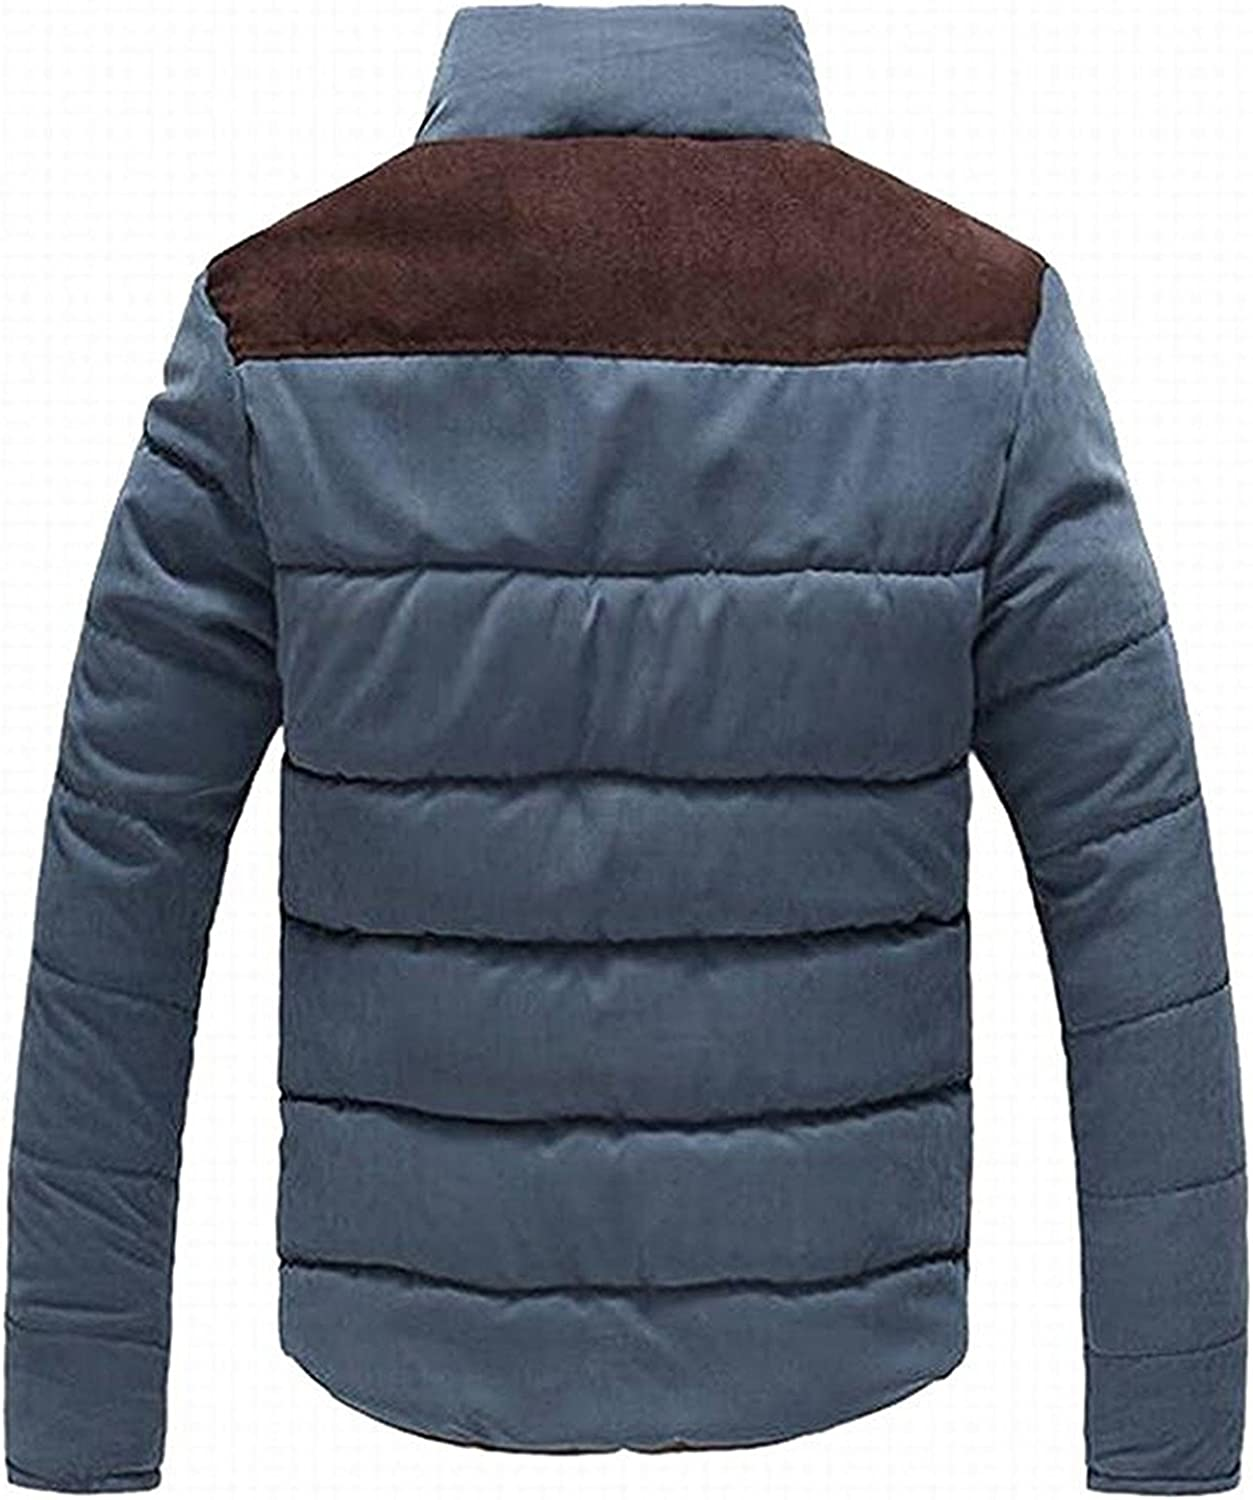 Swimblue Mens Casual Thicken Warm Quilted Down Puffer Jacket Coat